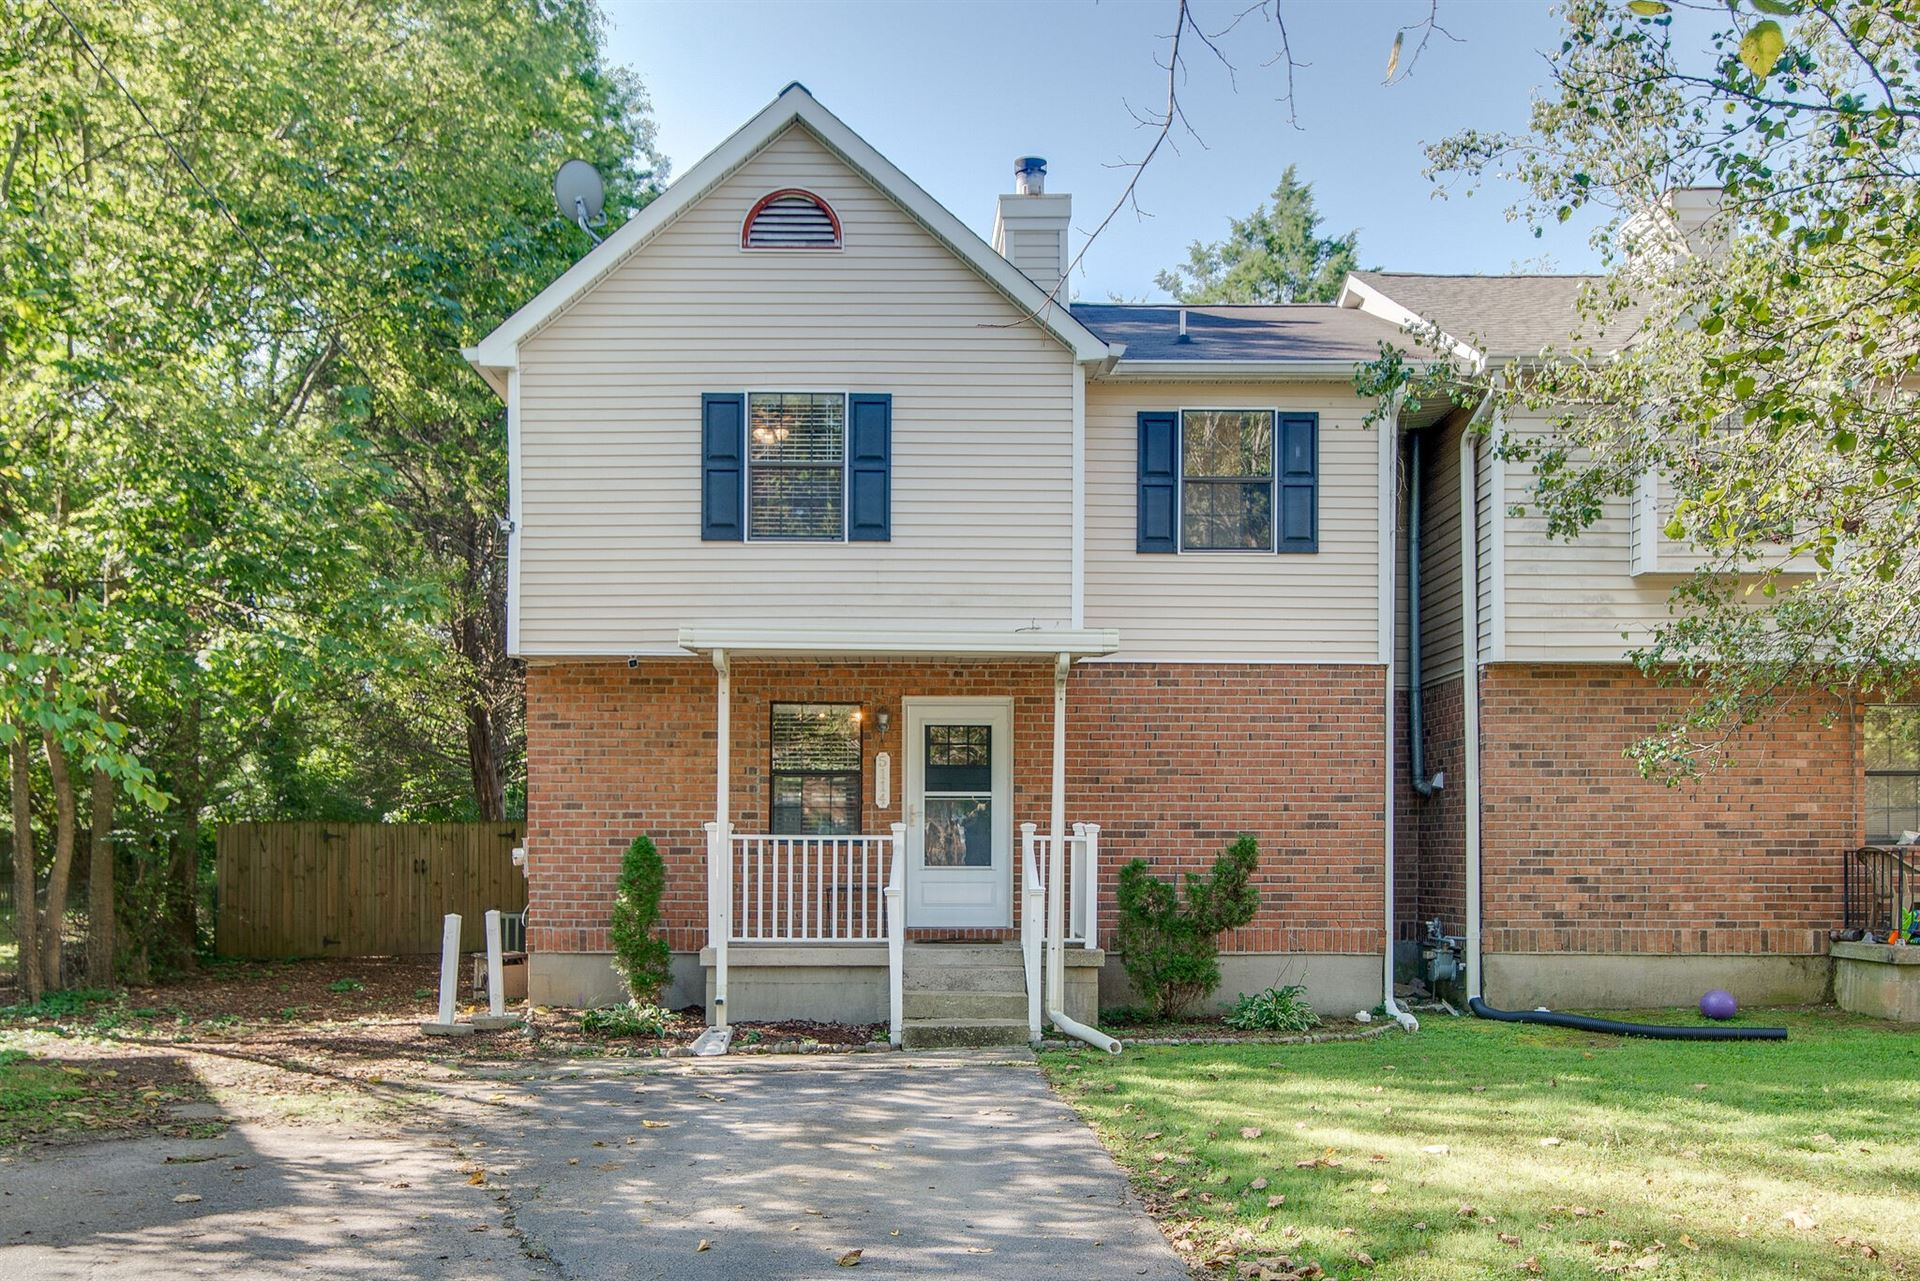 Photo of 5114 Hunters Point Ln, Hermitage, TN 37076 (MLS # 2192018)